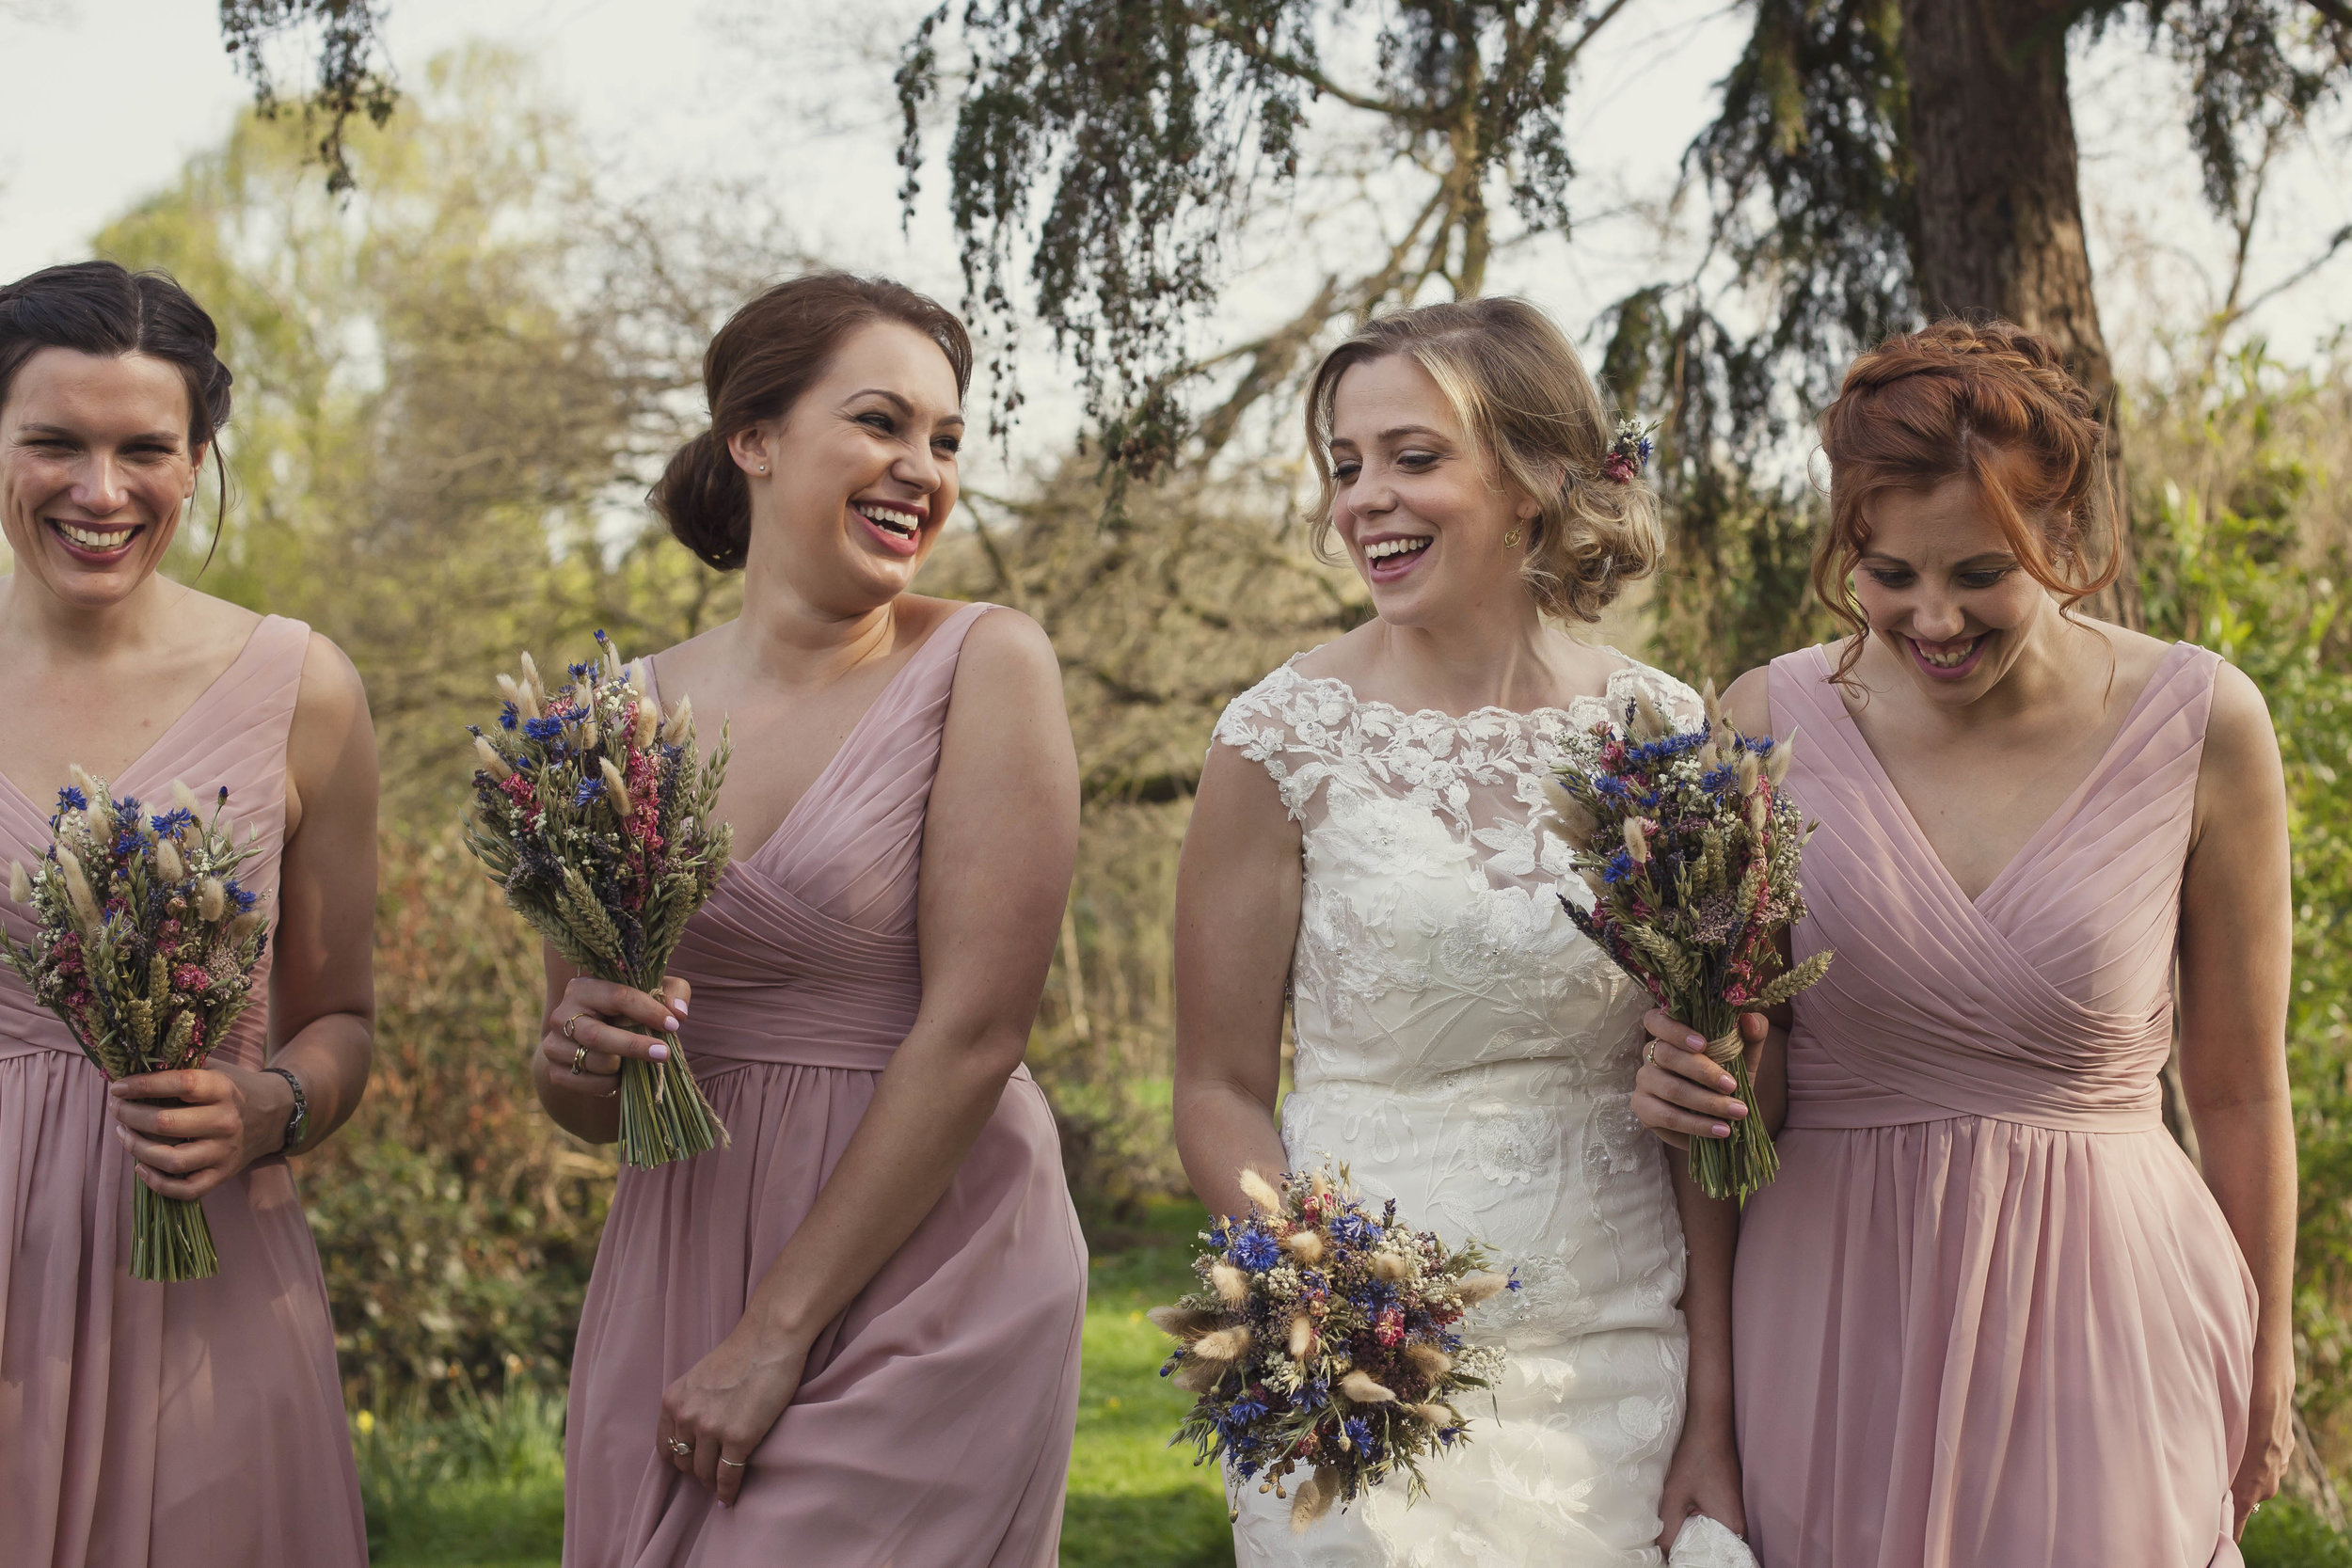 Bride and bridesmaids laughing in wedding photo